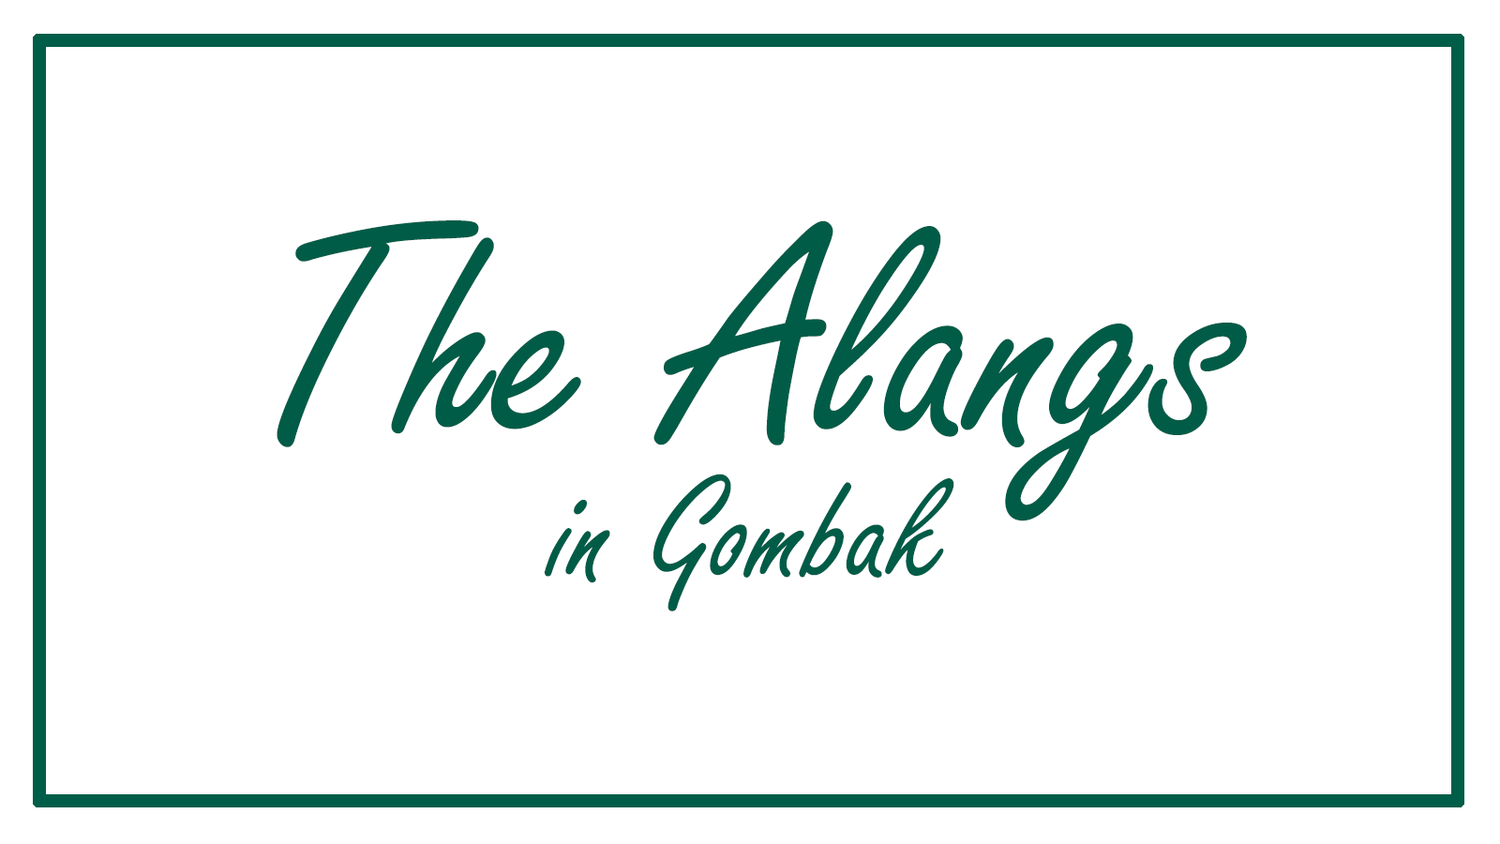 The Alangs in Gombak